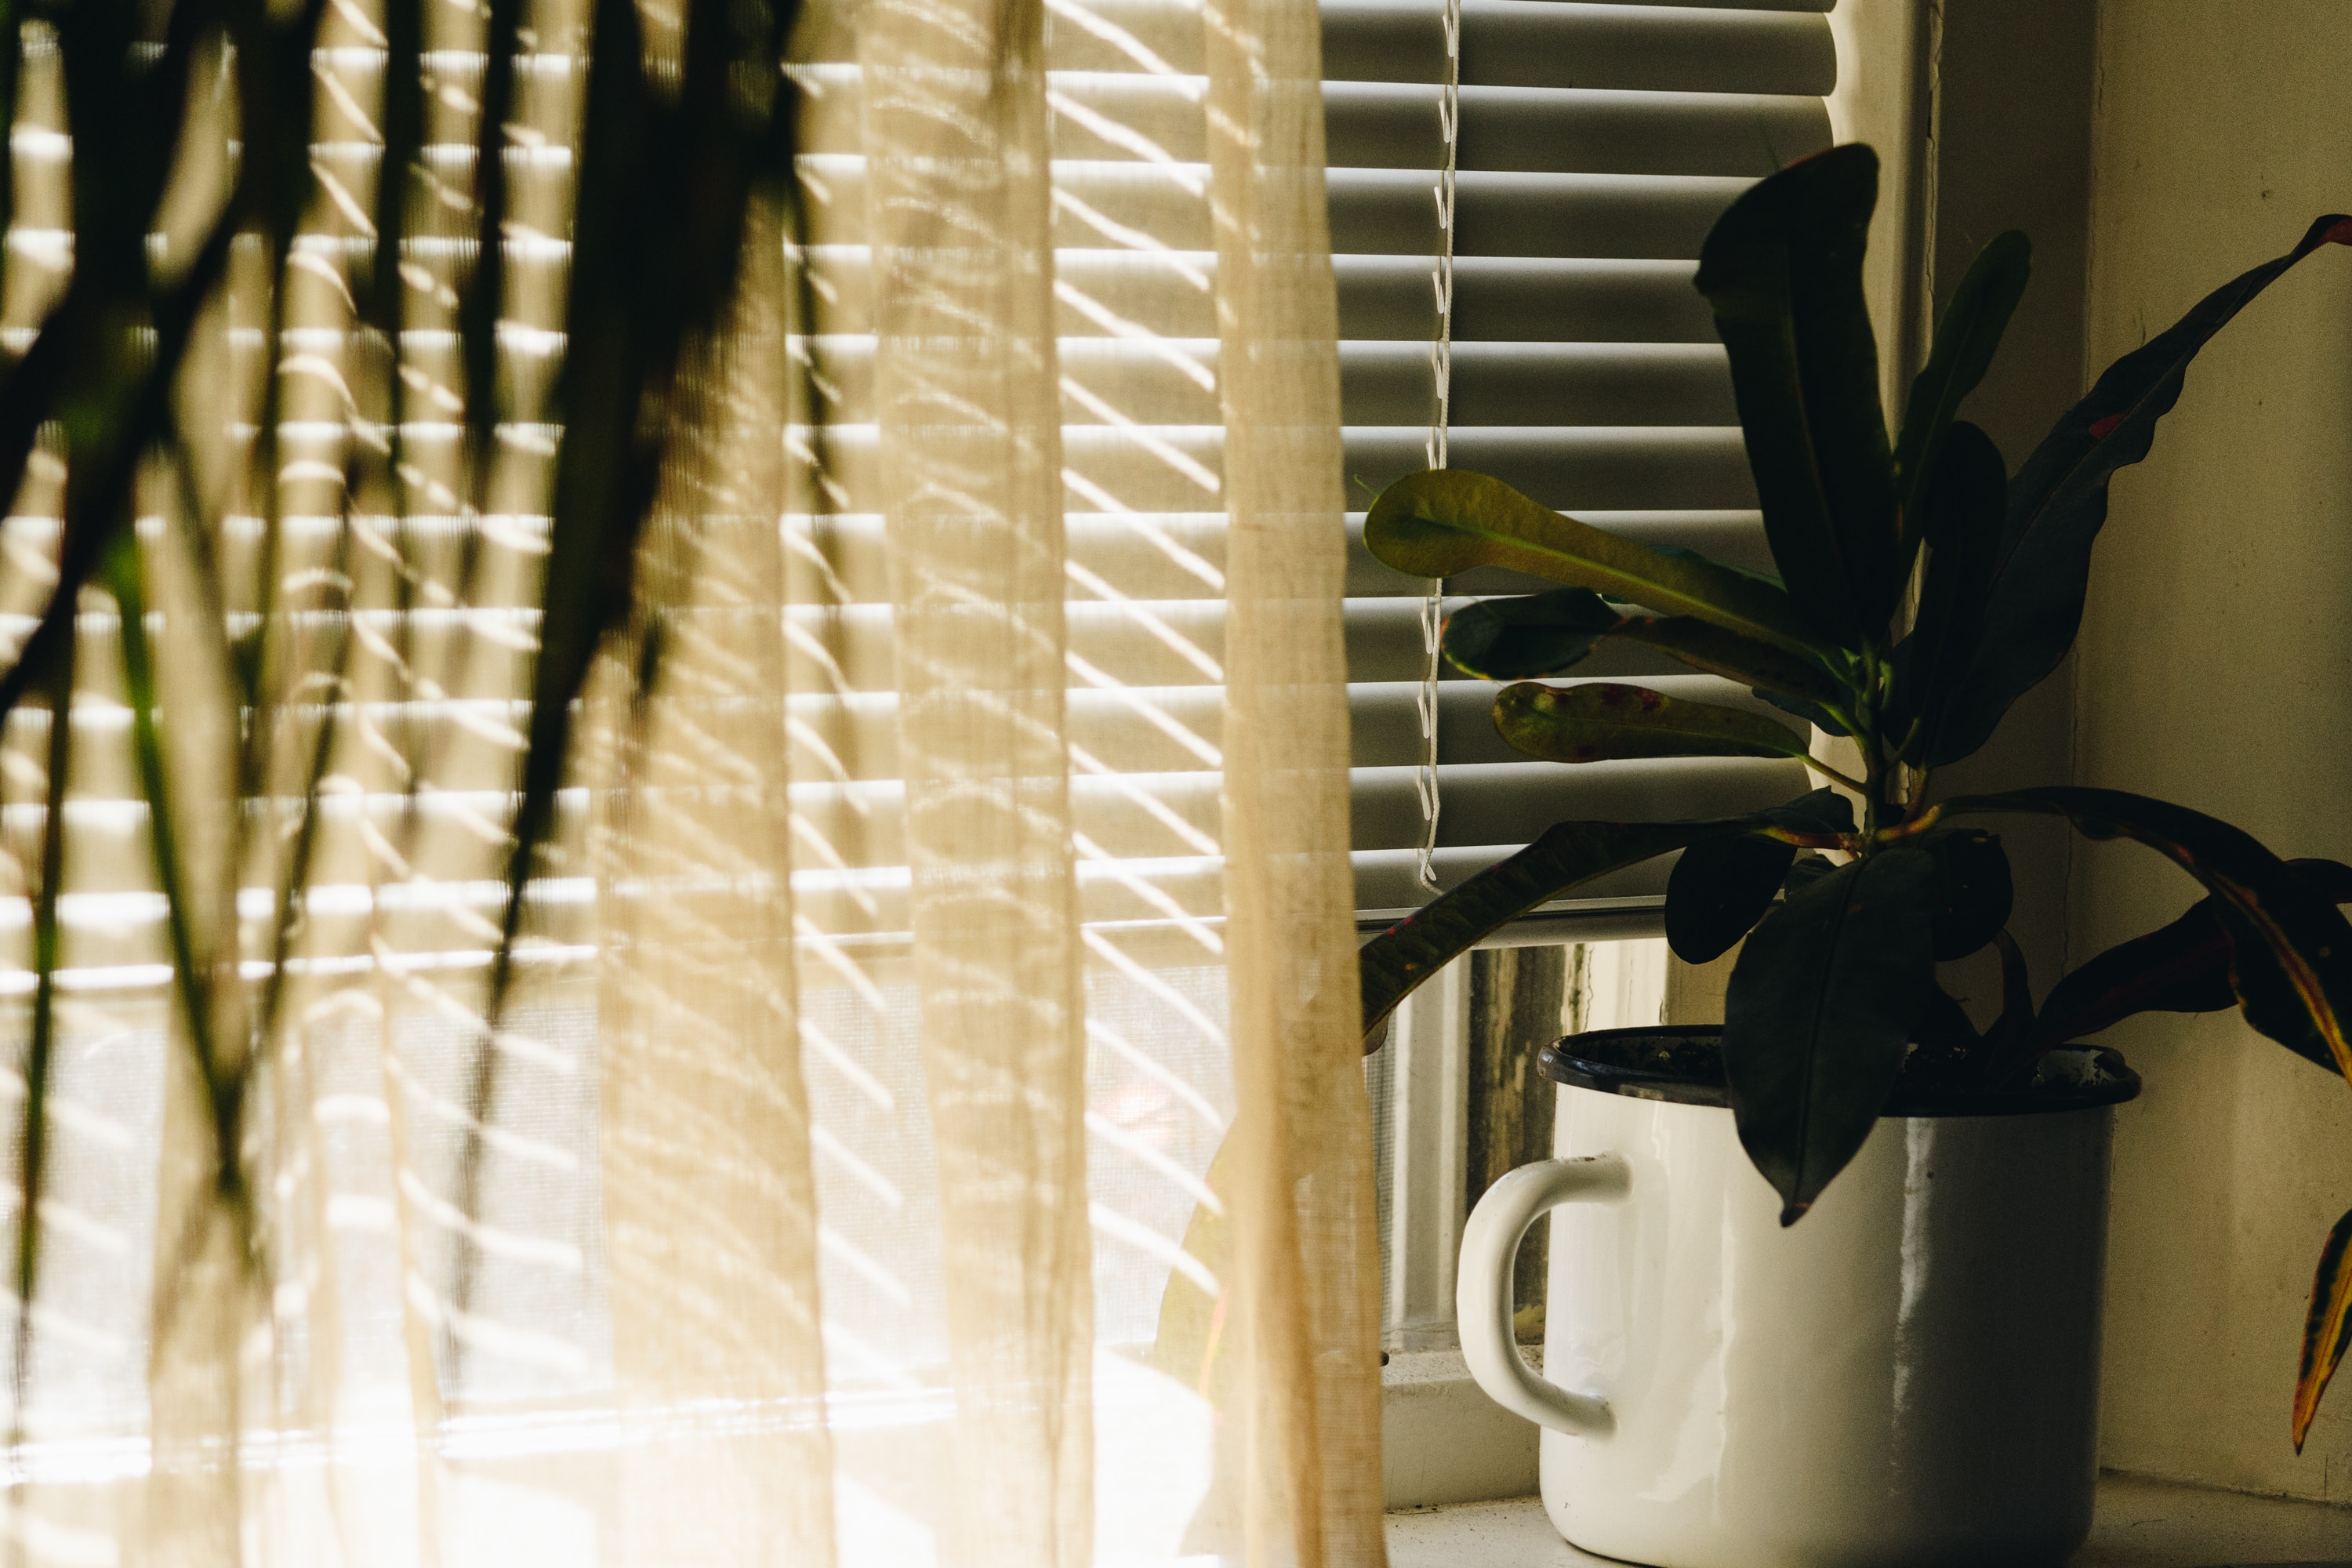 How to Babyproof Your Home Starting with the Blinds